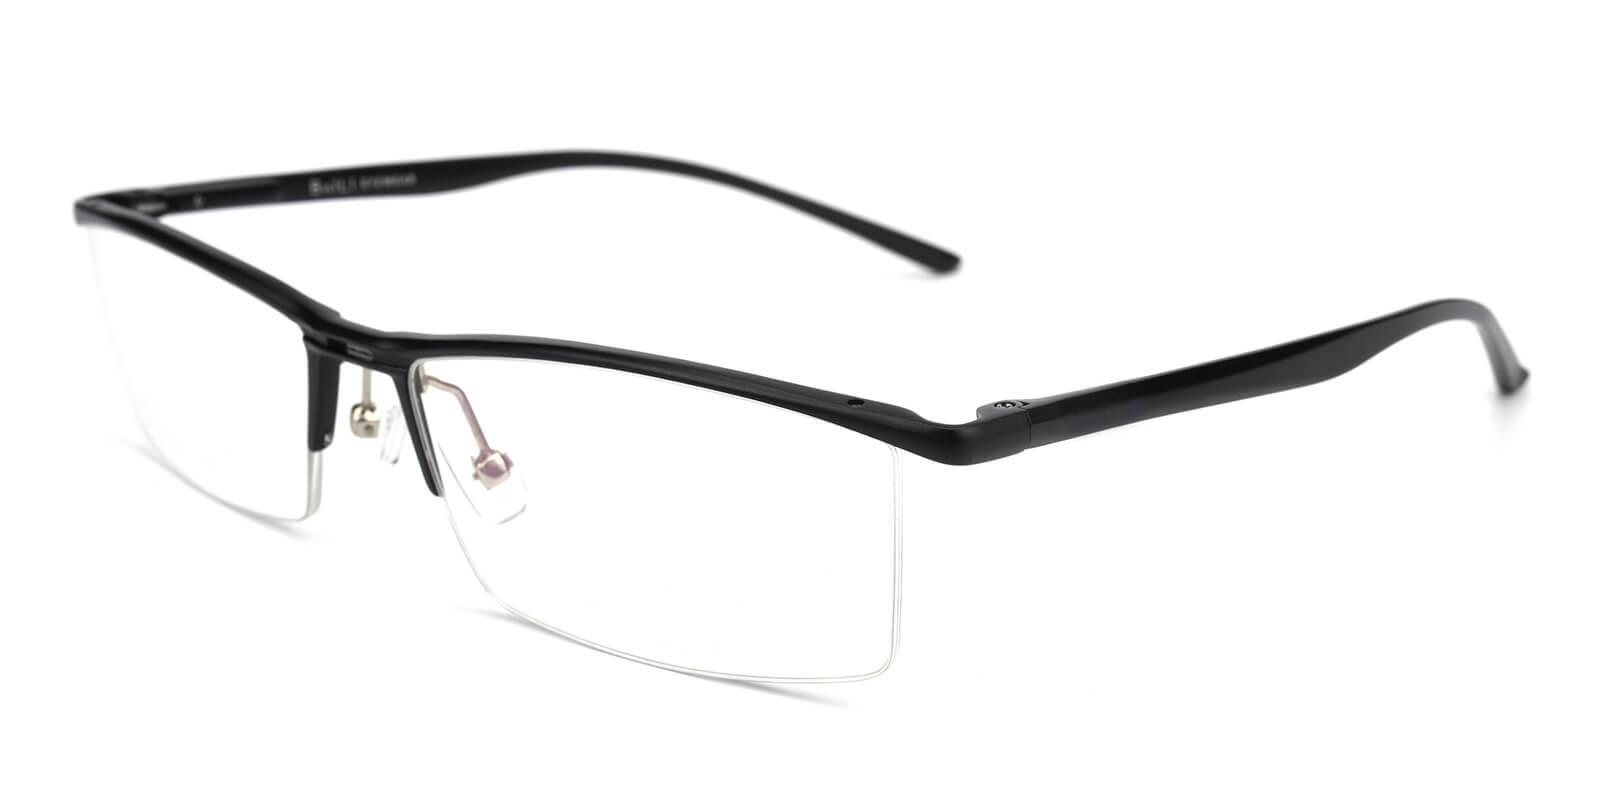 Metalla-Black-Rectangle-Metal-Eyeglasses-additional1